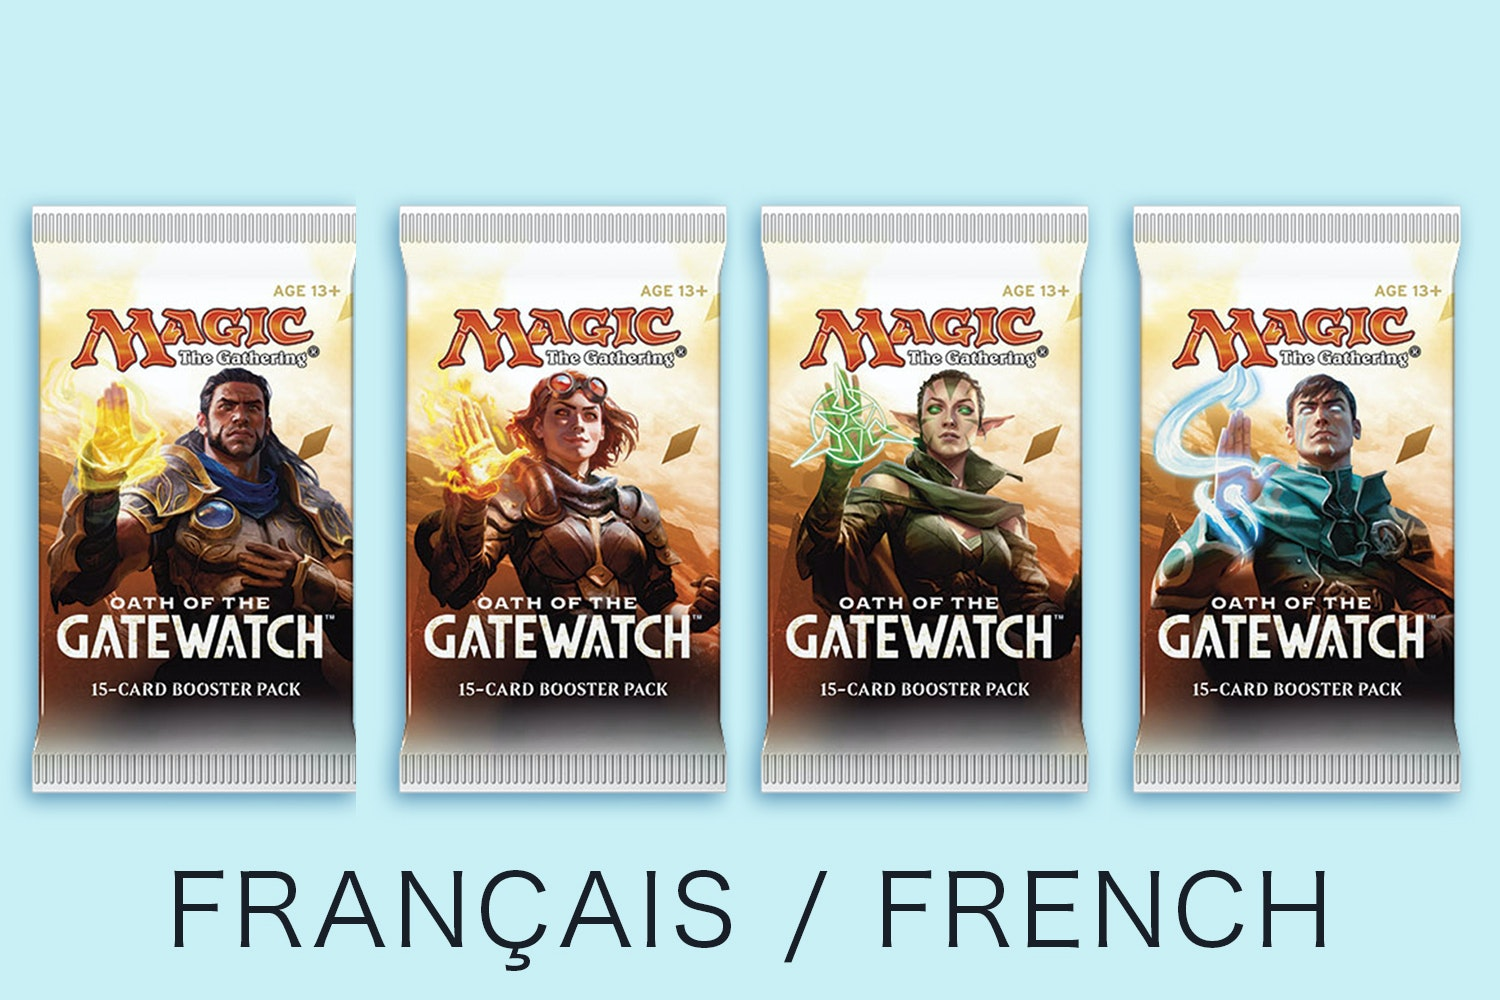 Oath of Gatewatch in French